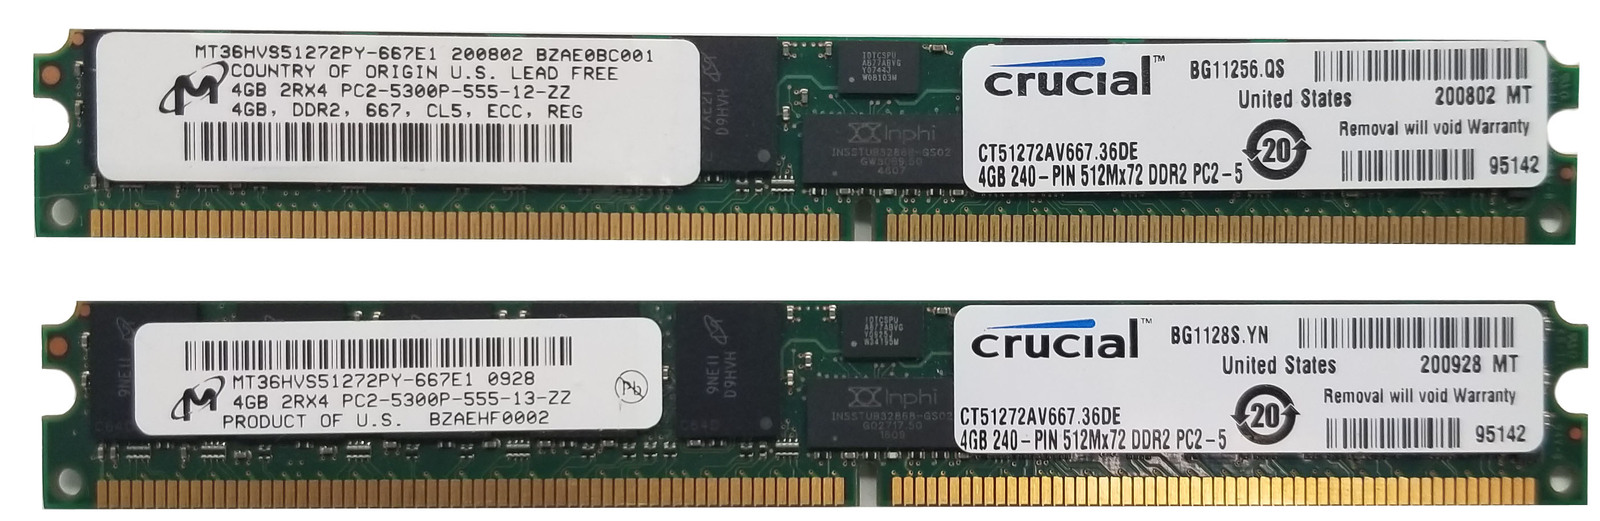 Micron 4GB DDR2 ECC REG RAM MT36HVS51272PY-667E1 (LOT OF 2) Bin:6